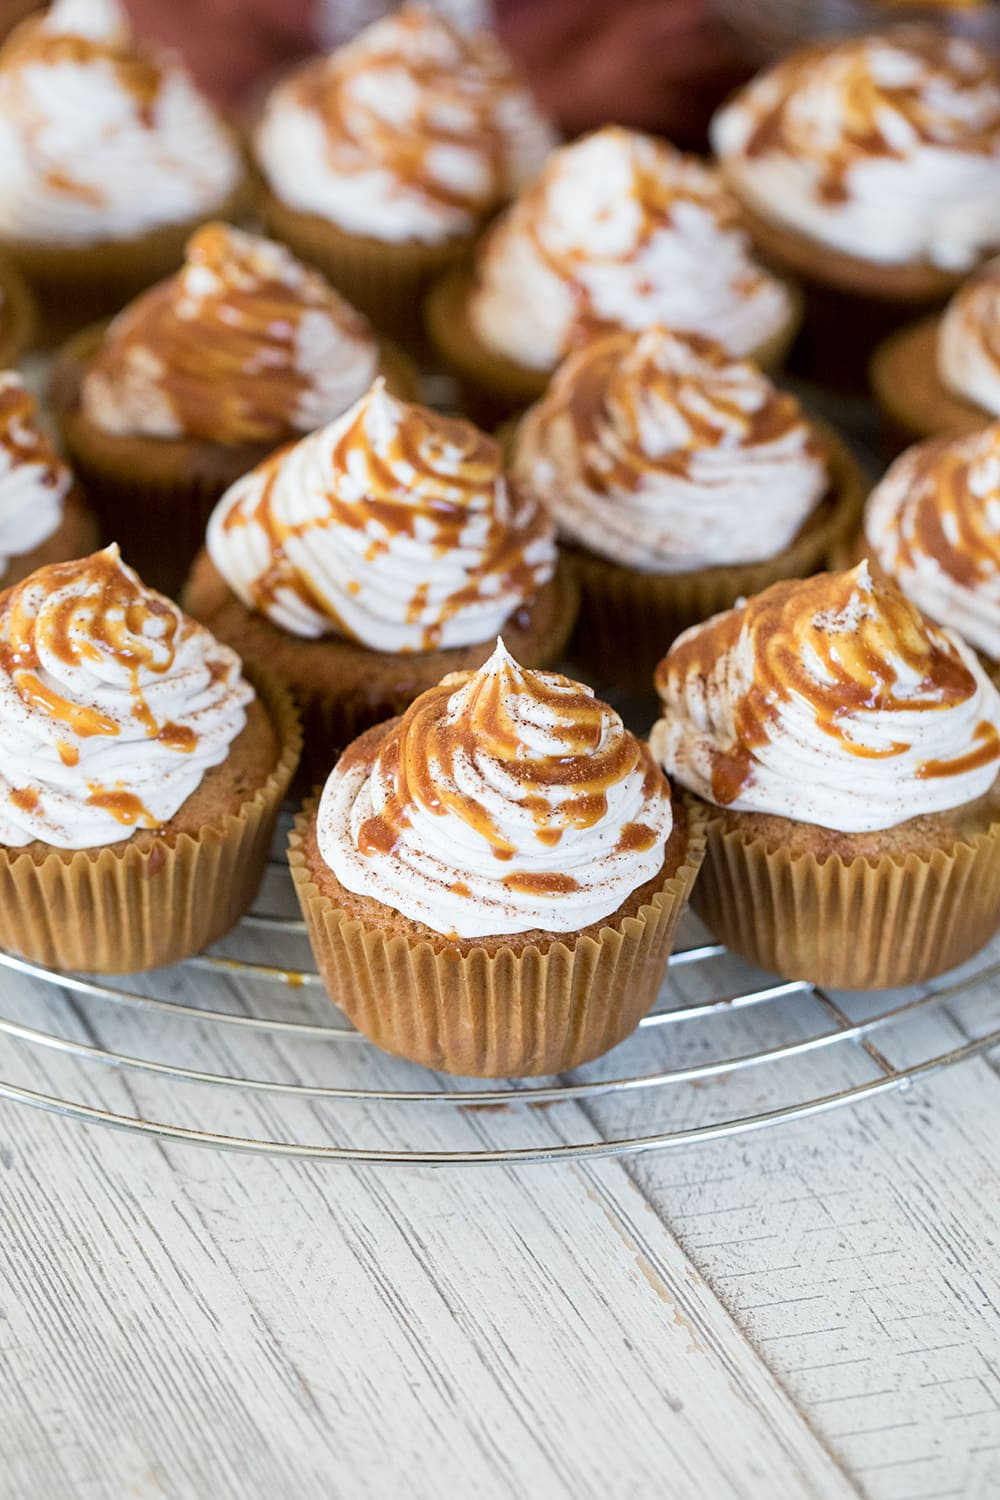 Apple Cider Cupcakes with Cider Buttercream Frosting